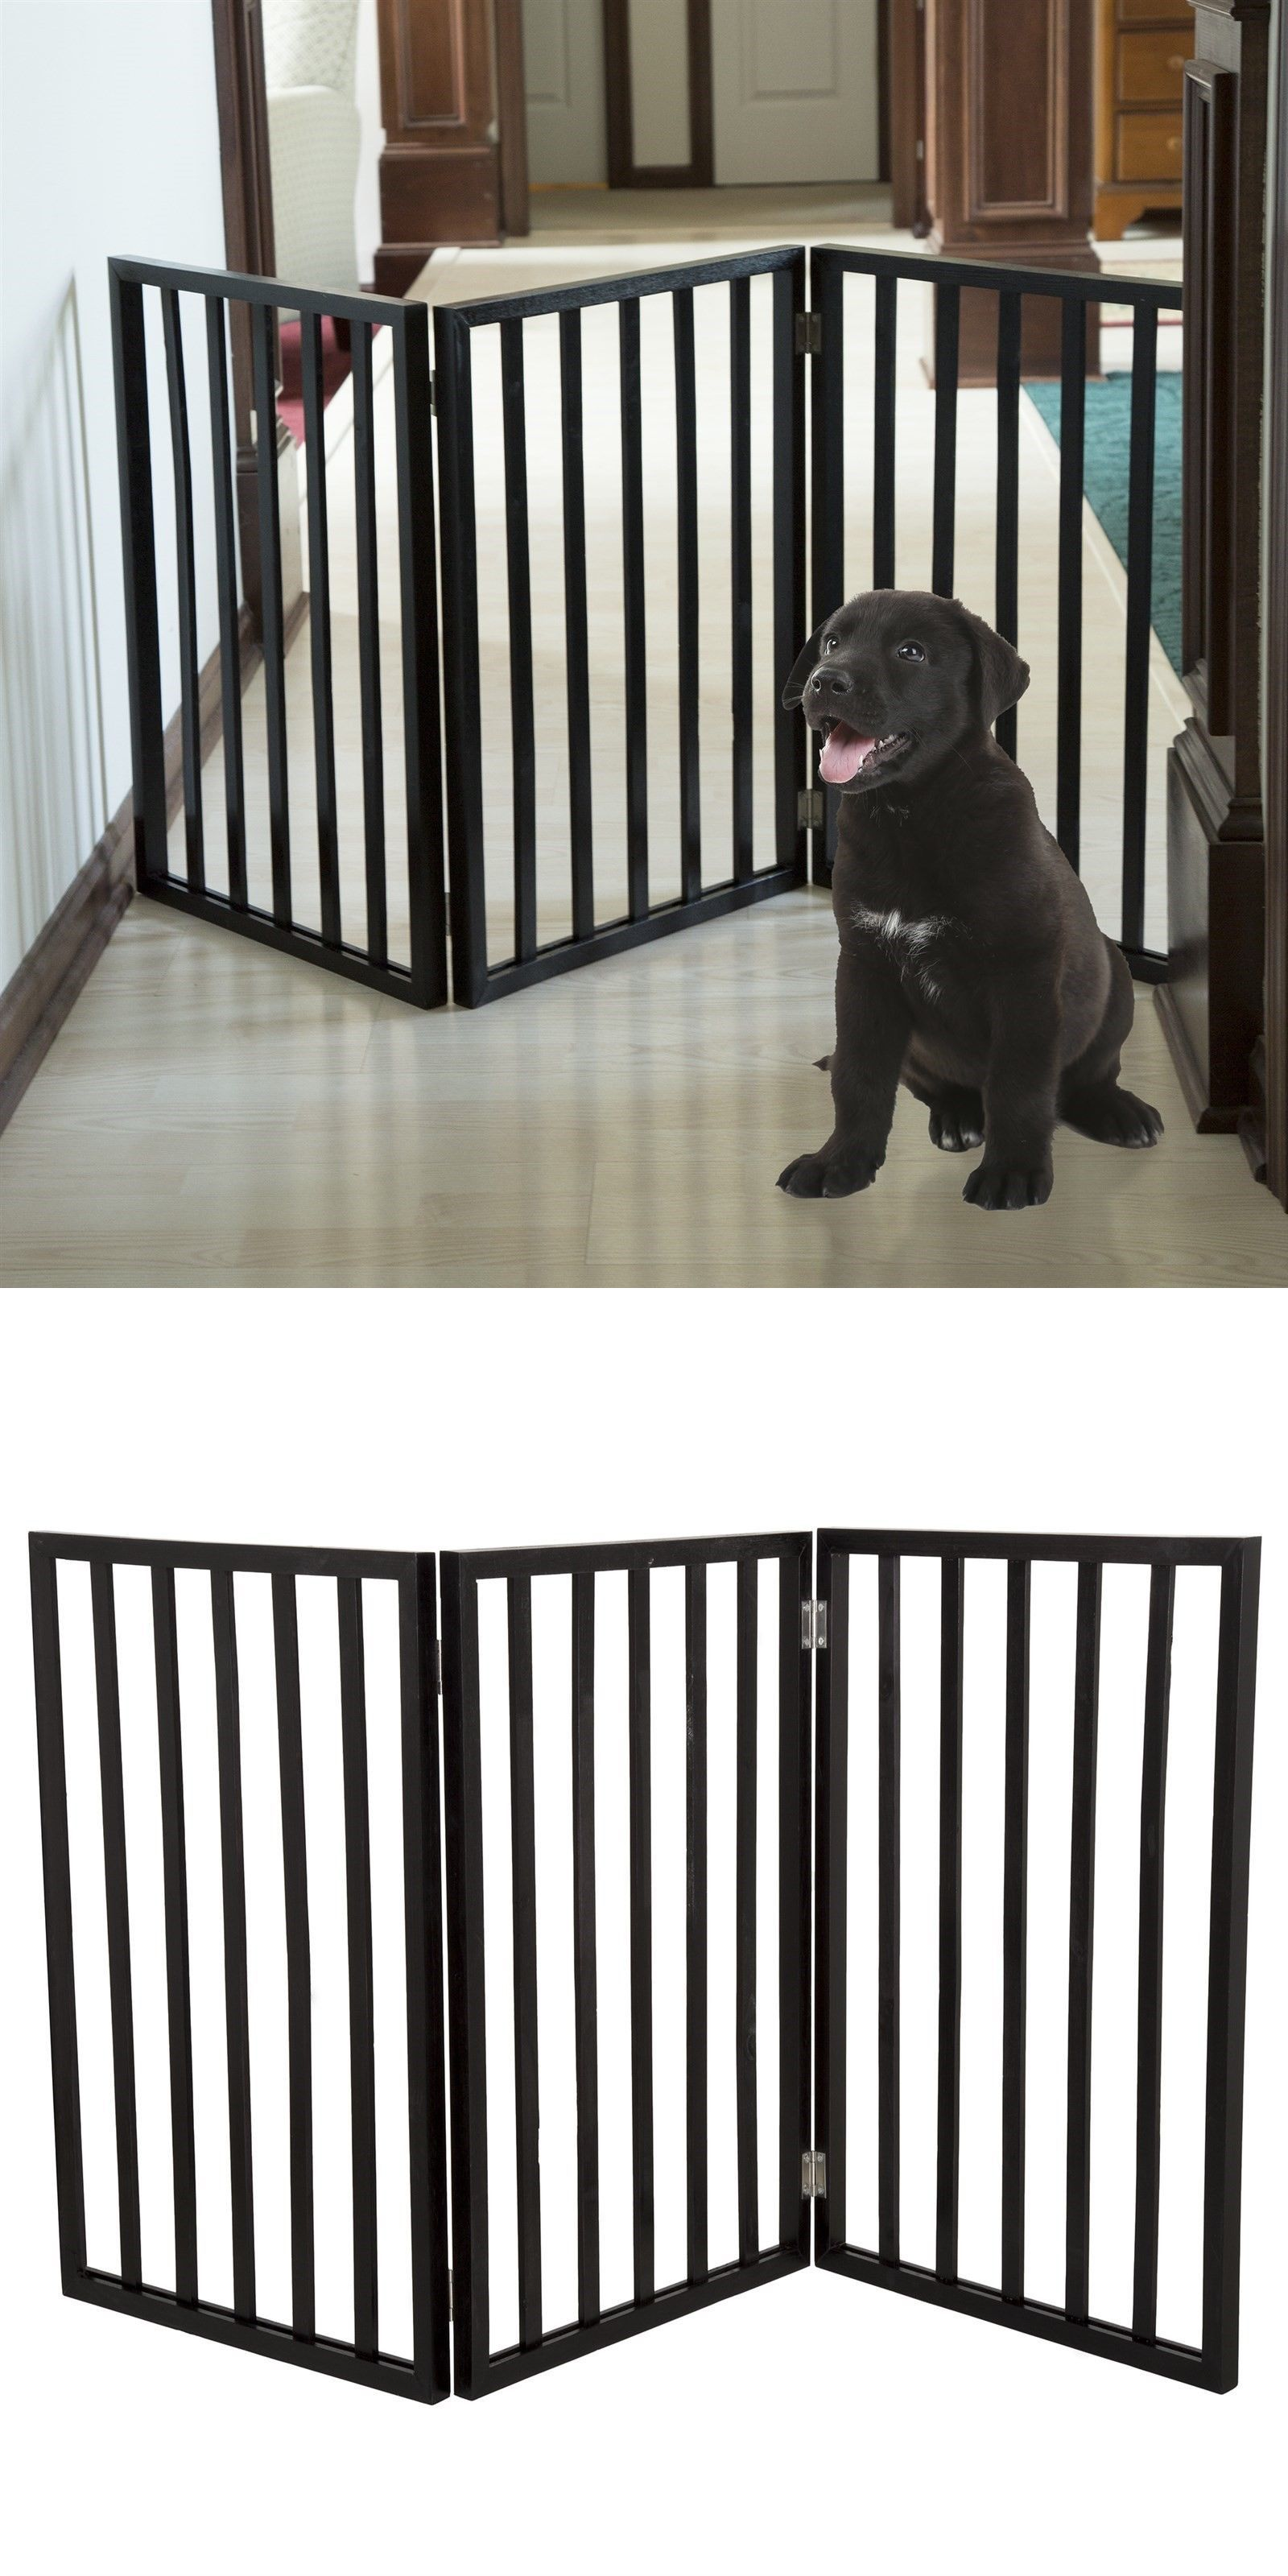 Easy up free standing folding gate x inch dog room separator